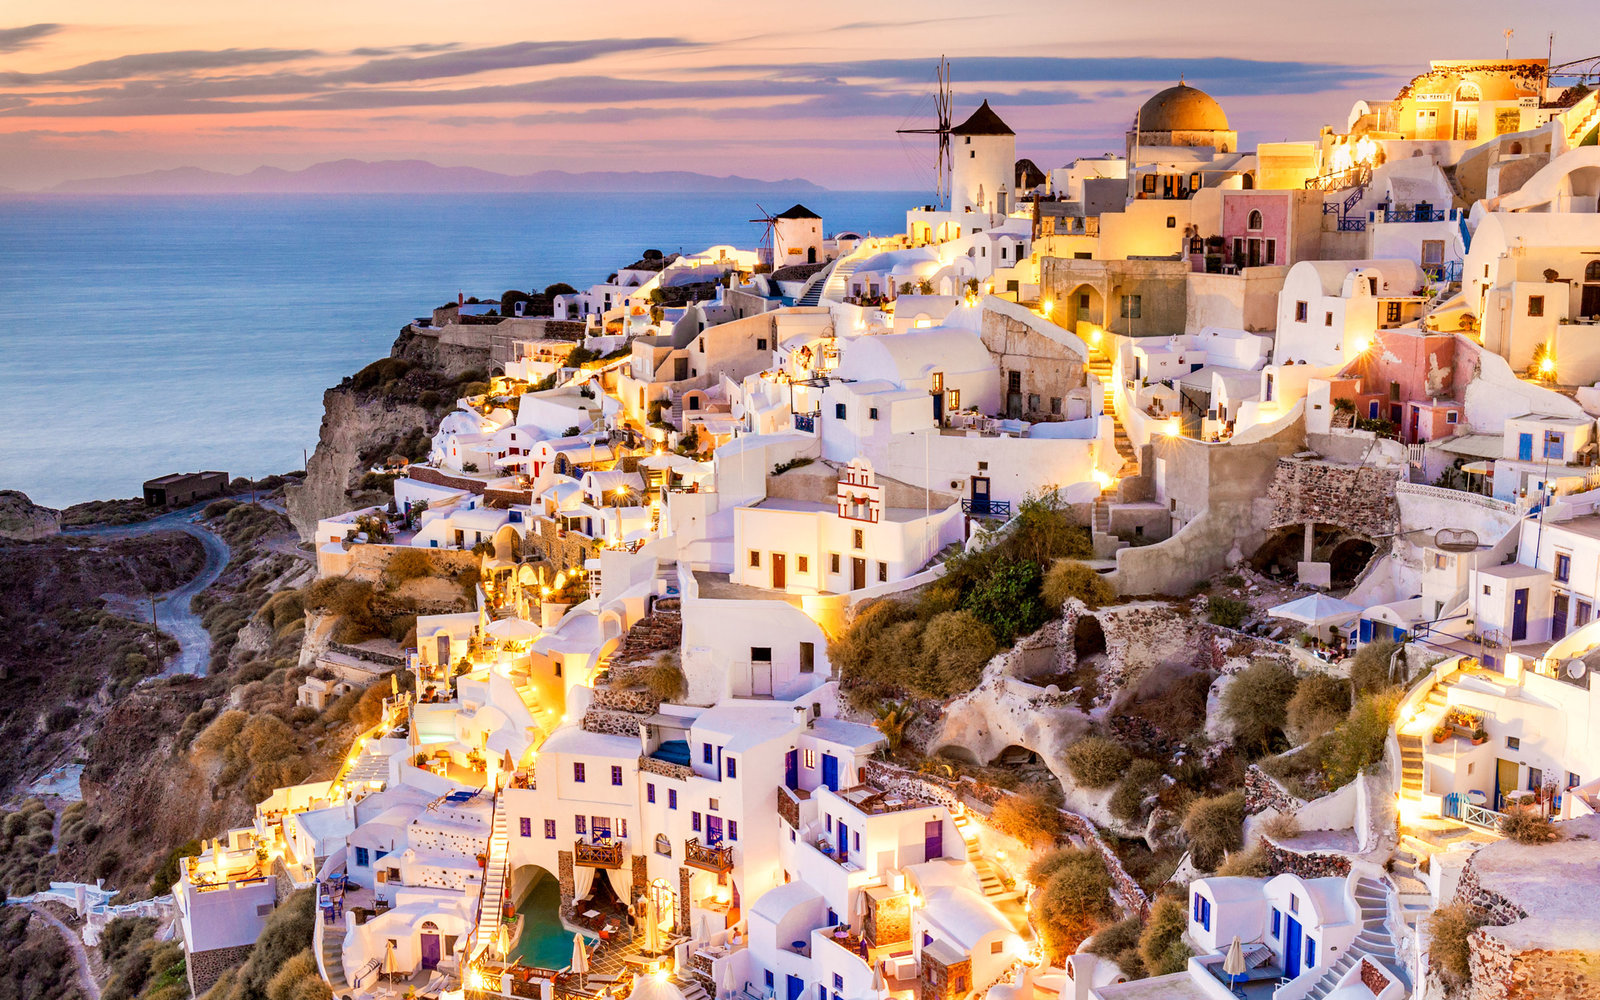 If you didn't want to visit Santorini before, you do now.